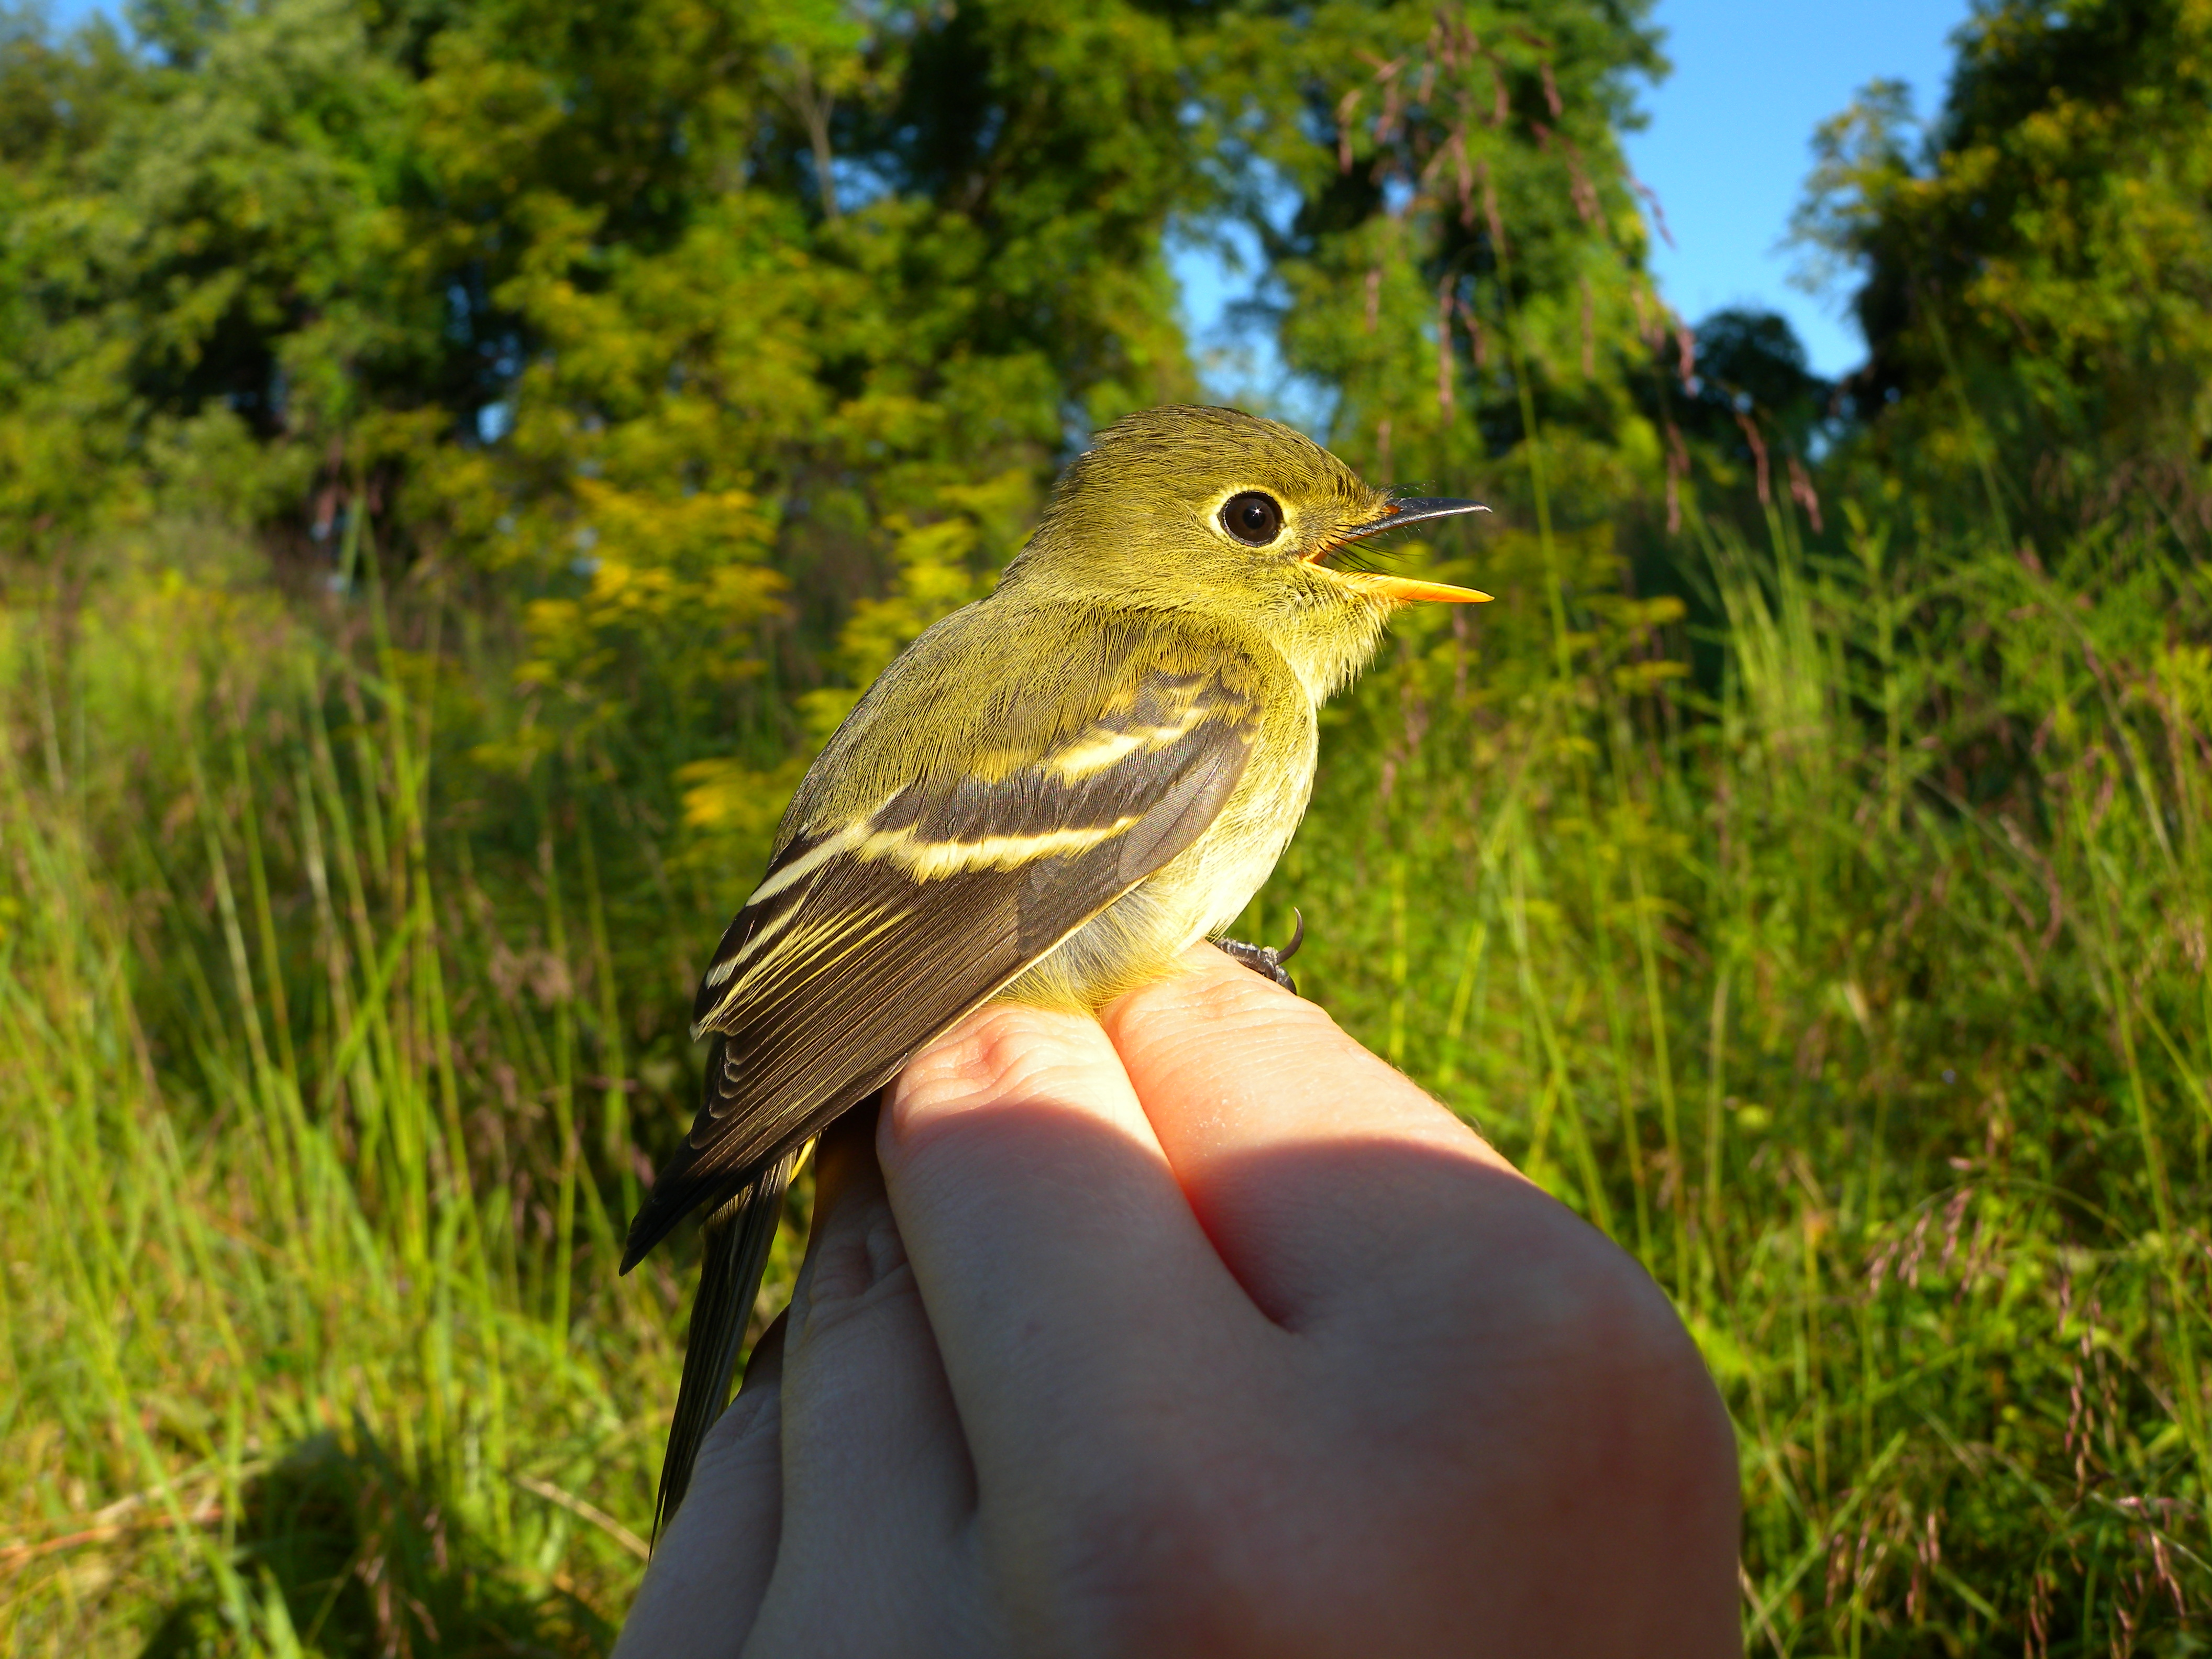 Yellow-bellied Flycatcher (Hatch Year- by yellowish wing bars).  Photo by Blake Goll.